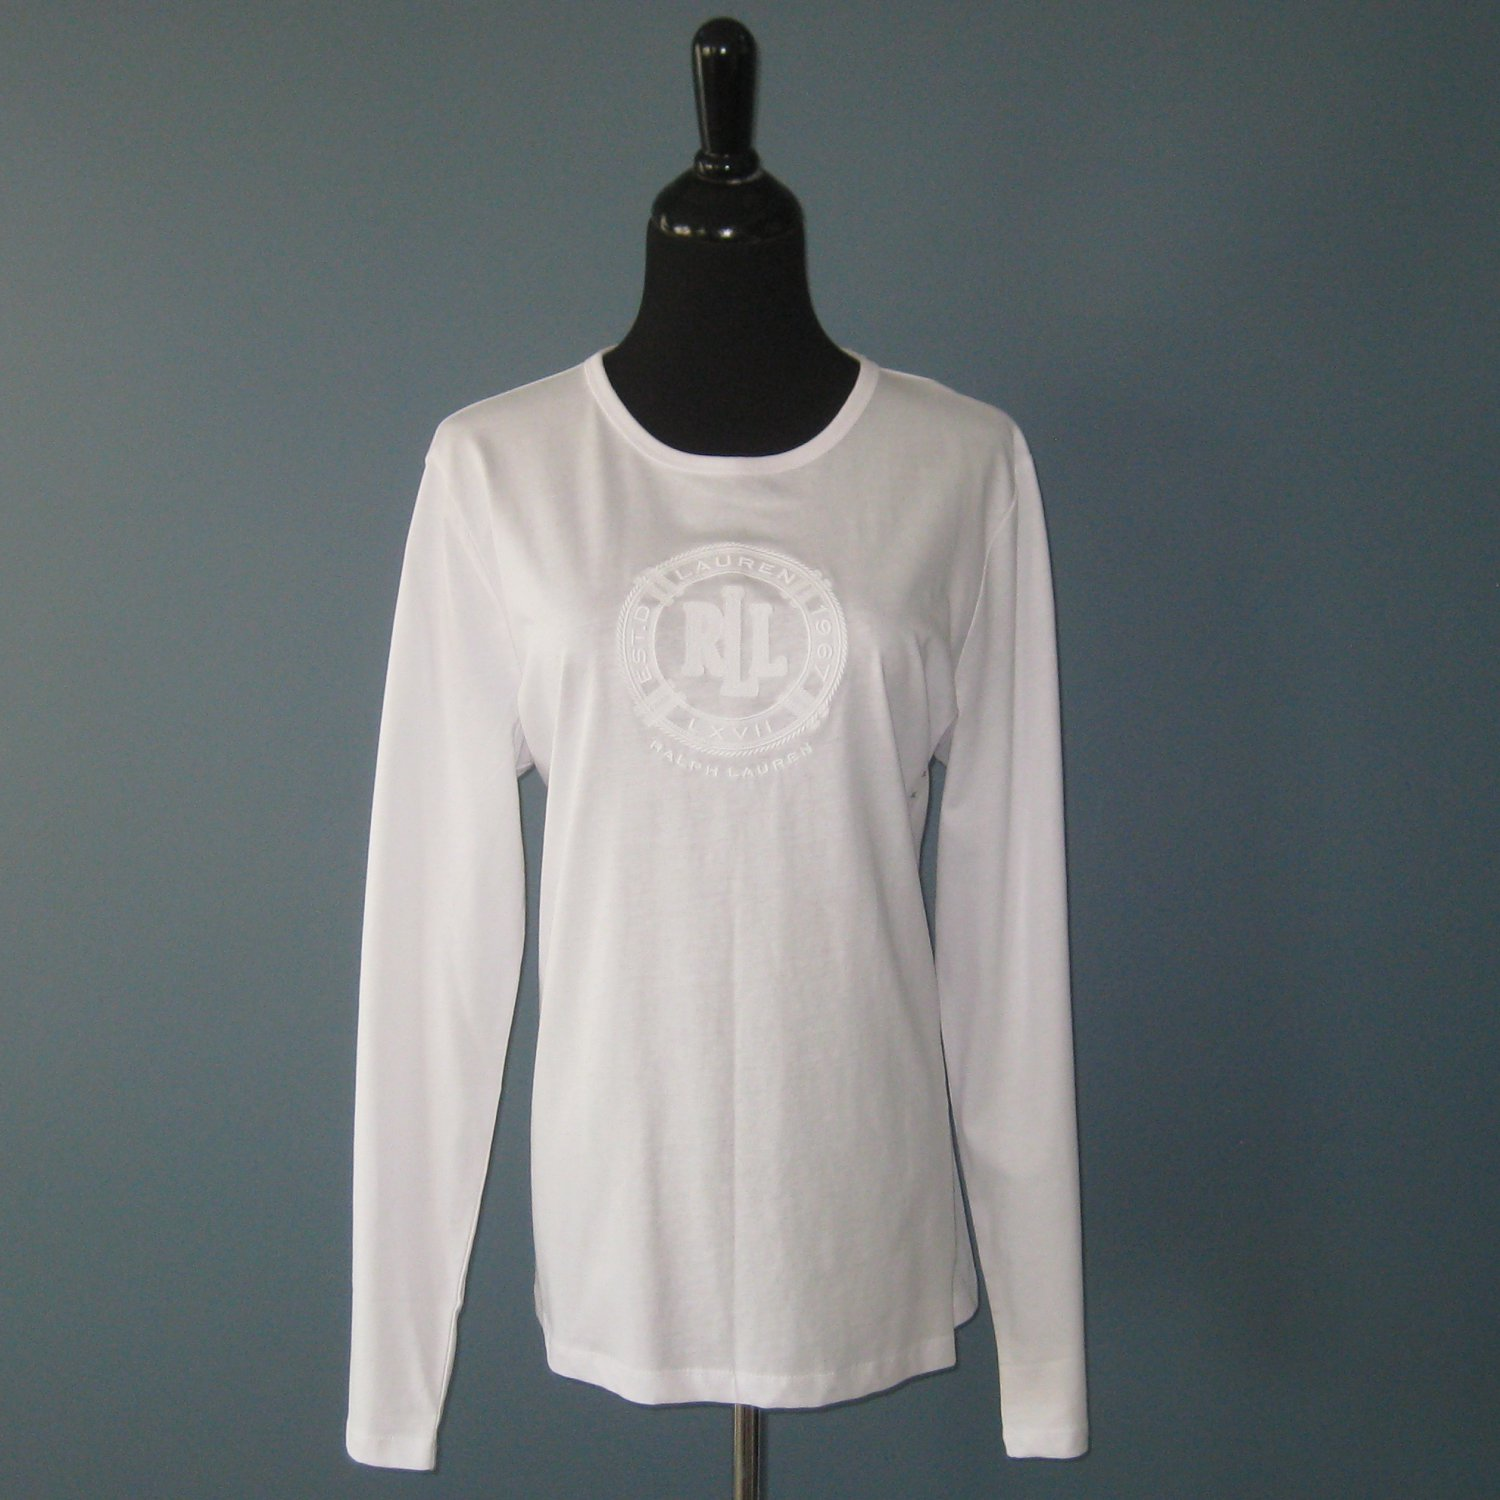 NWT Ralph Lauren White 100% Cotton RLL Embroidered L/S Top XL